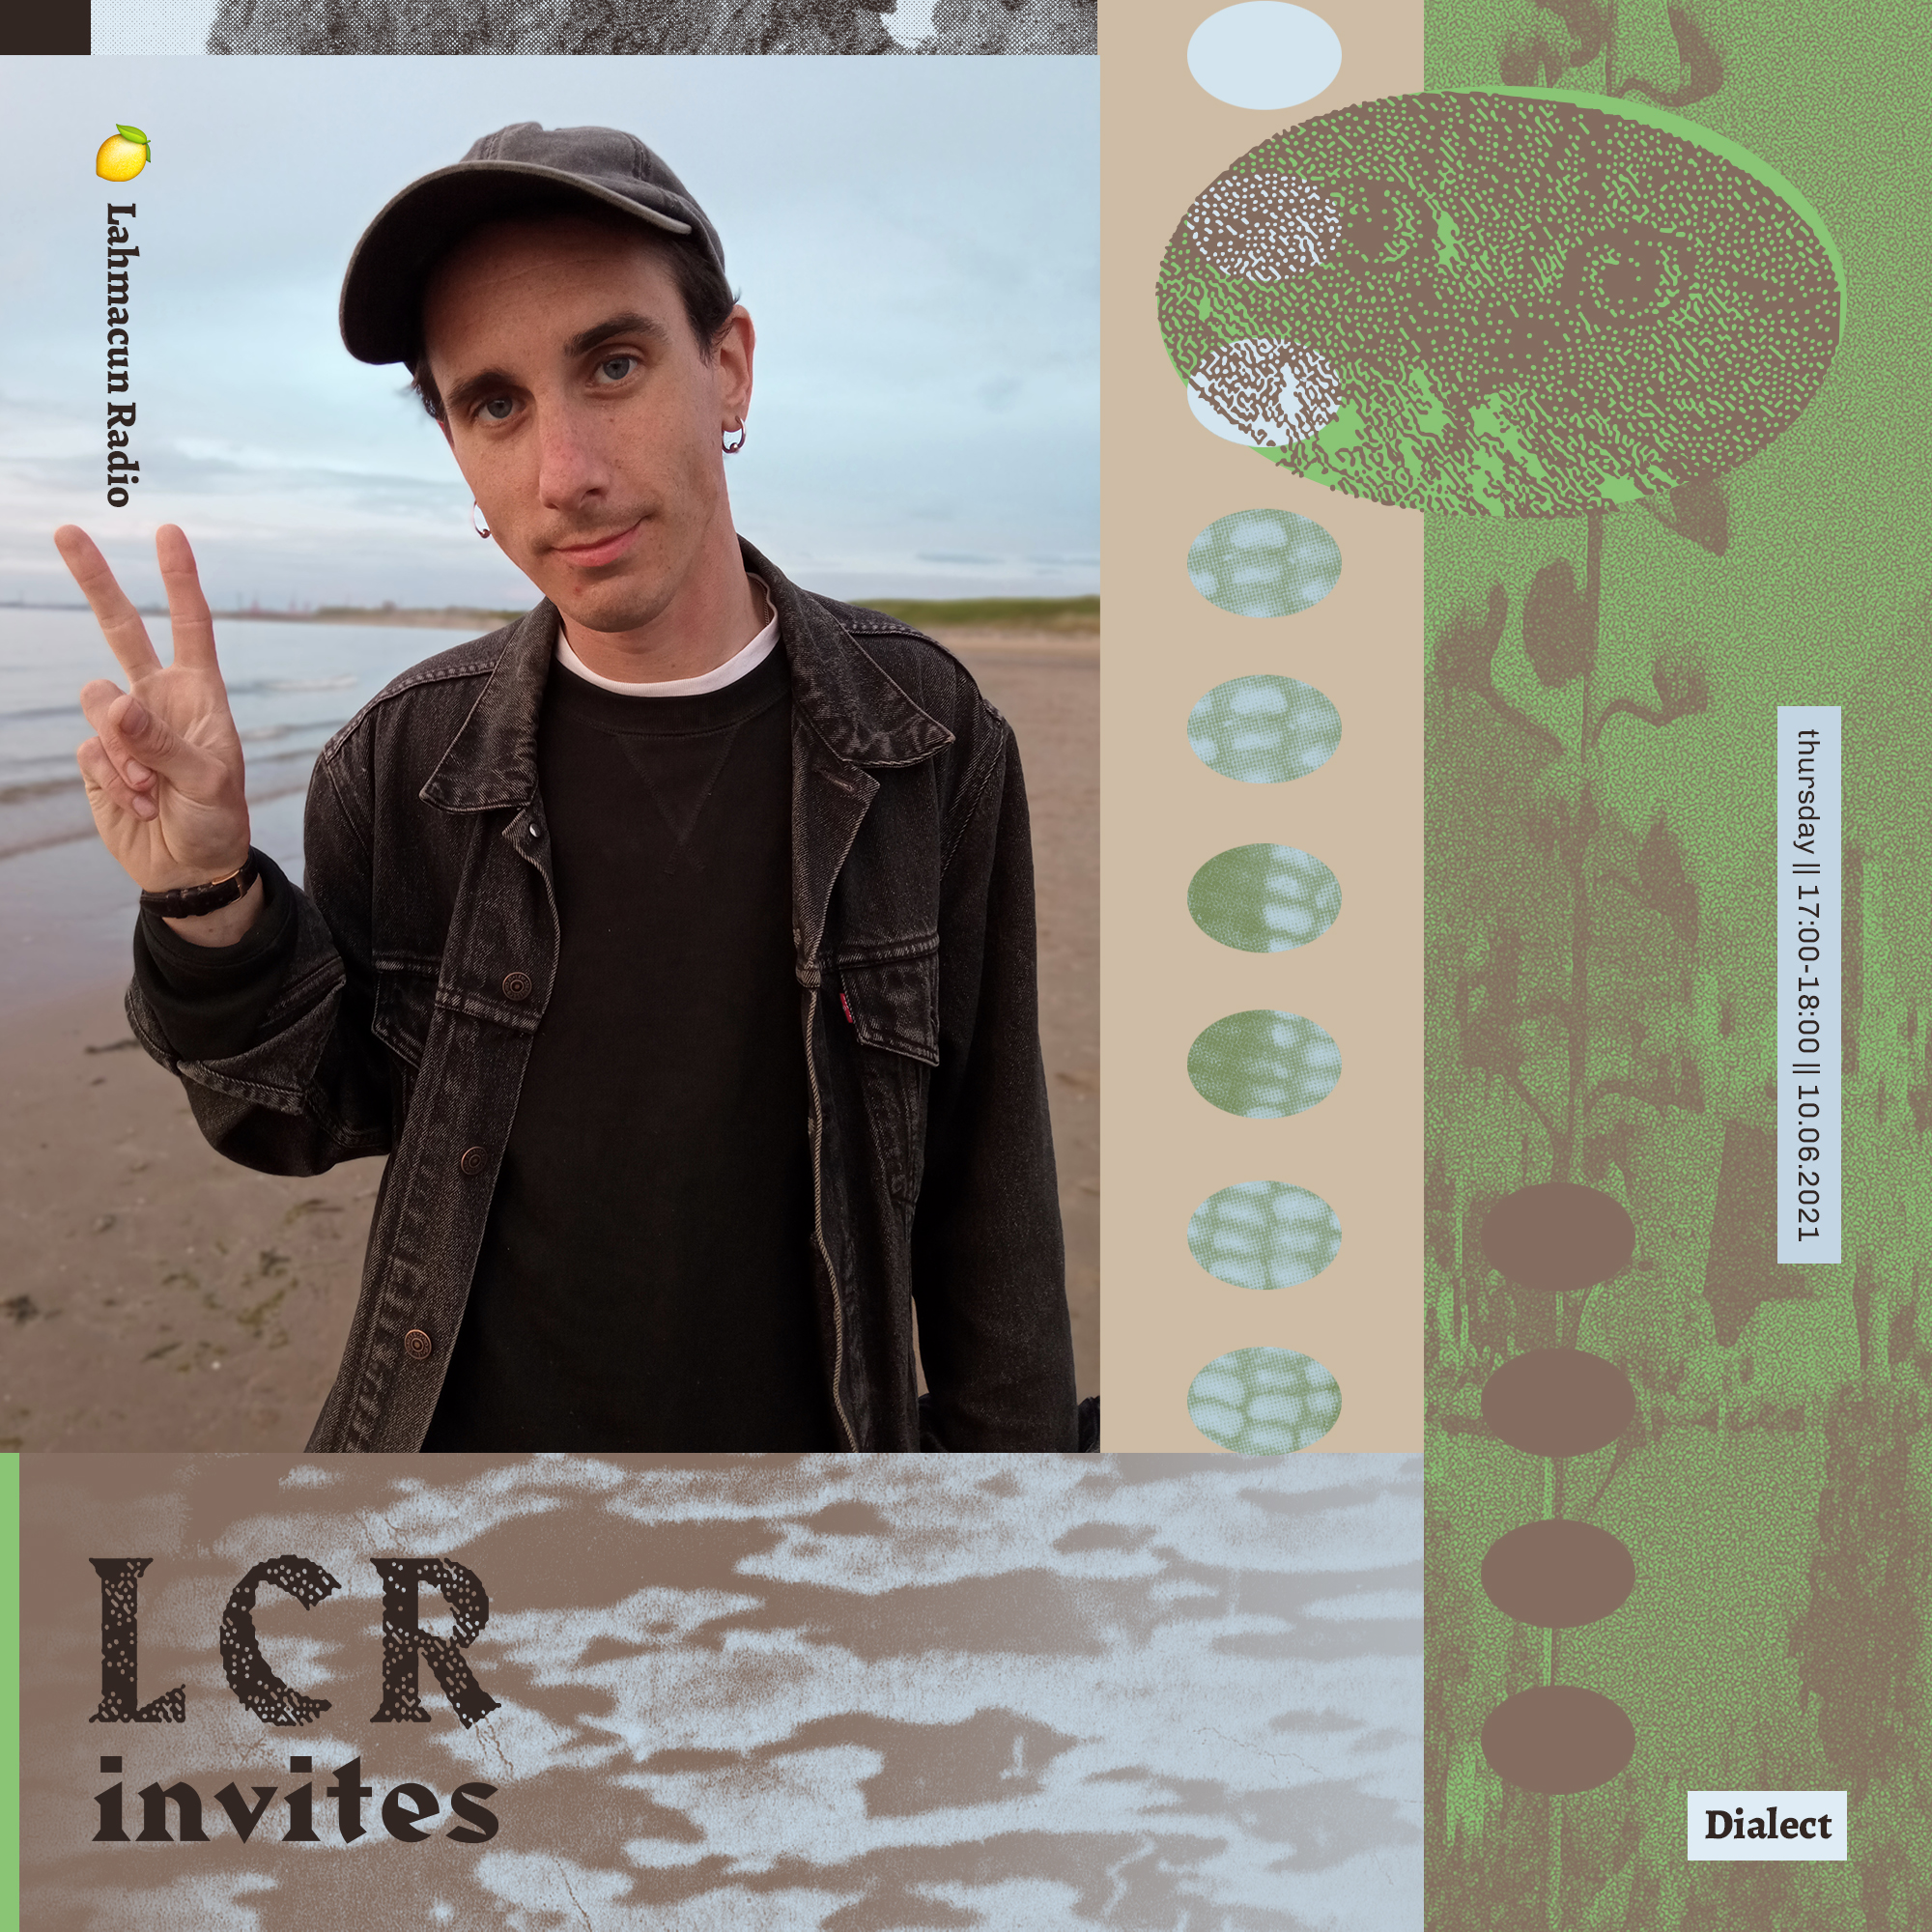 LCR INVITES /// Dialect /// [10.06.21]